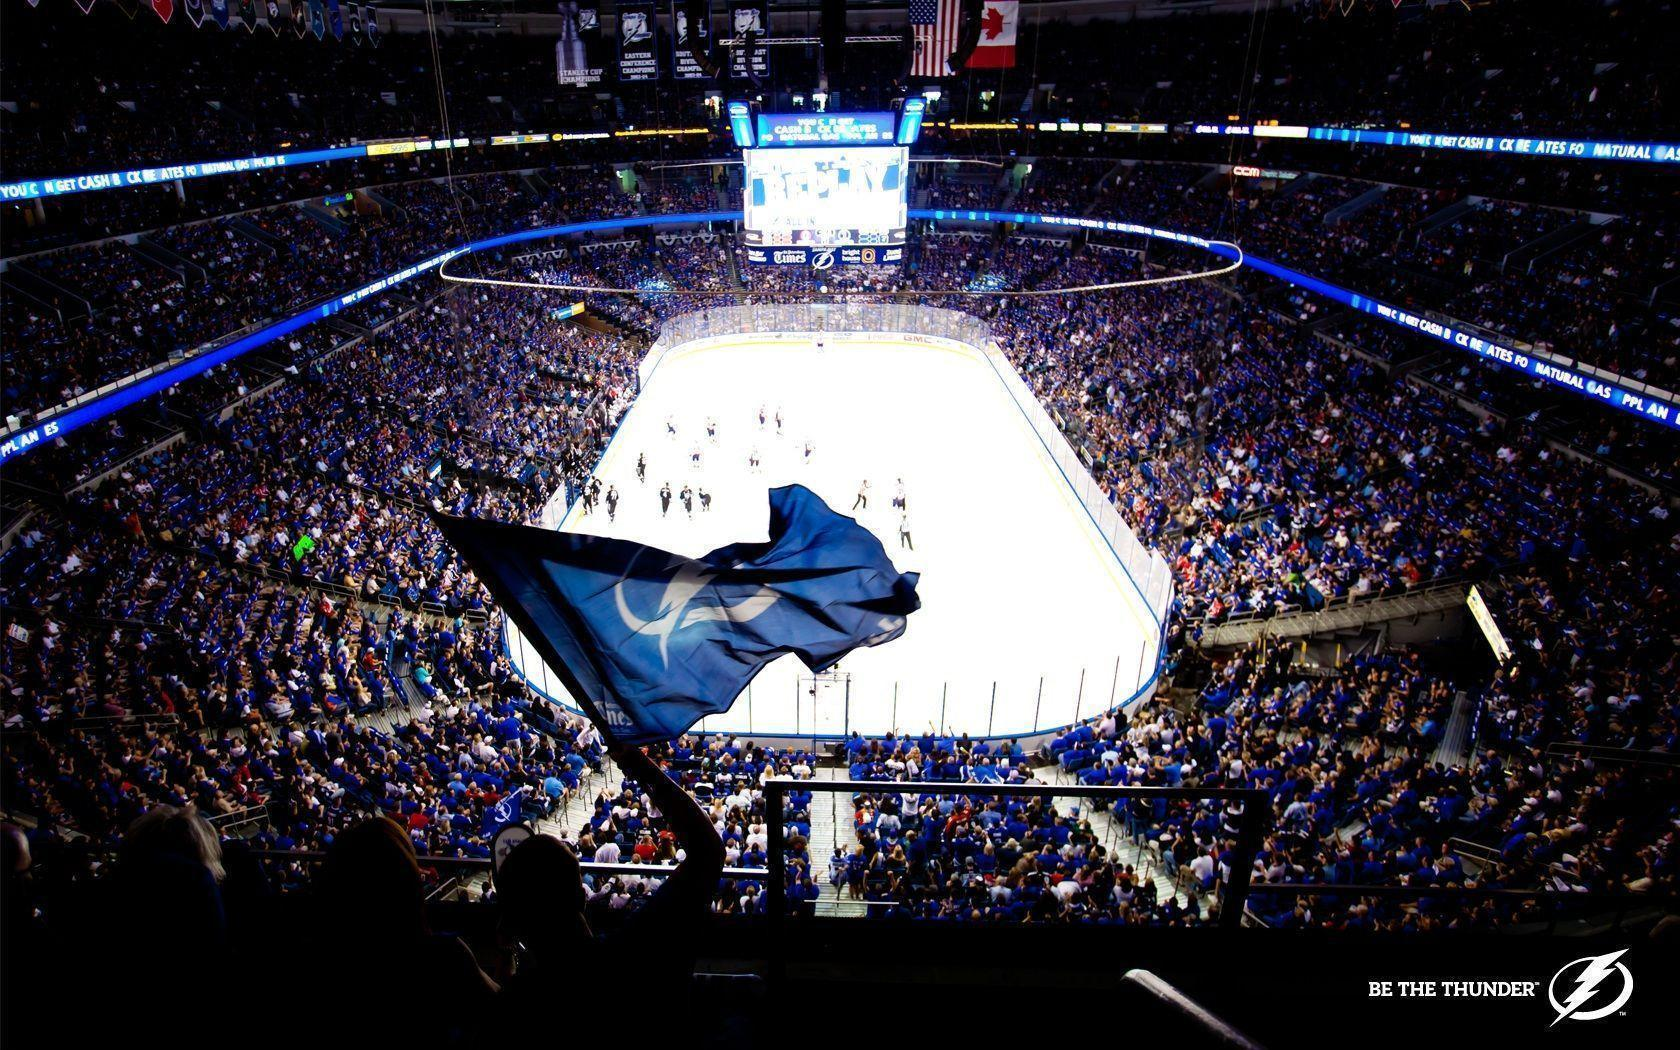 Be the Thunder - Tampa Bay Lightning Wallpaper (30398471) - Fanpop